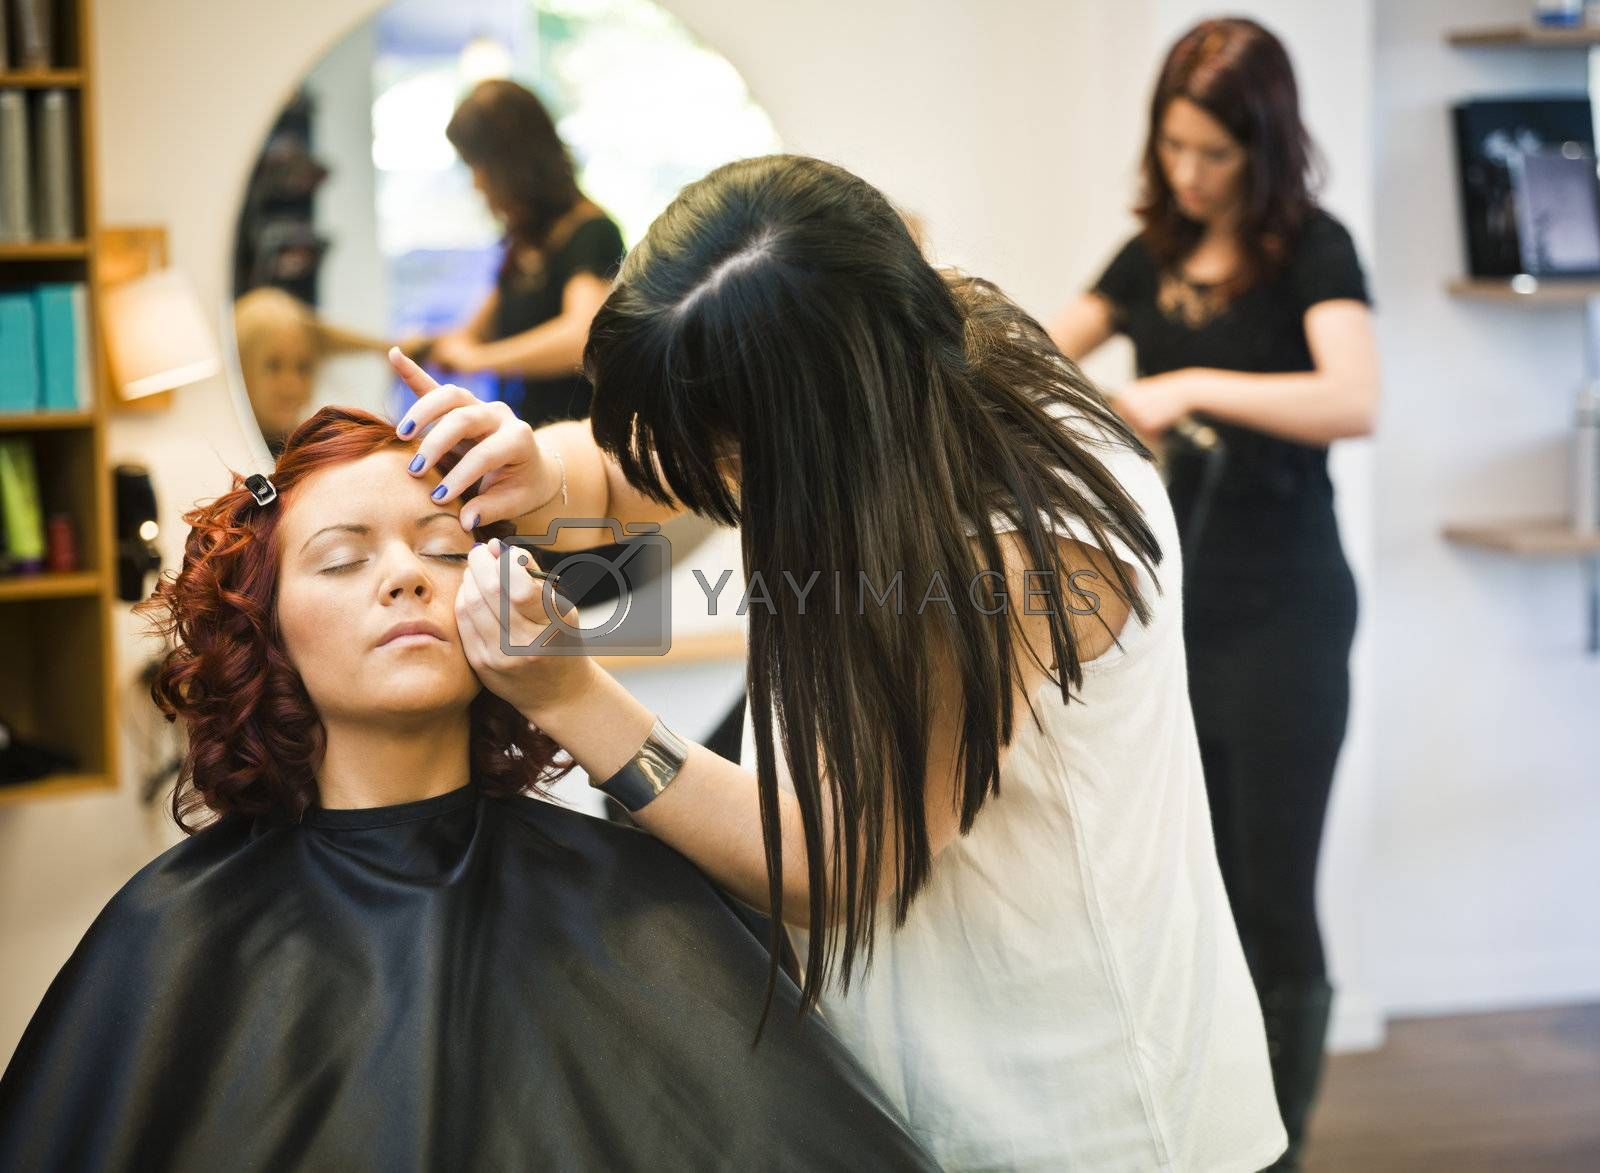 Make-up situation in a Beauty spa